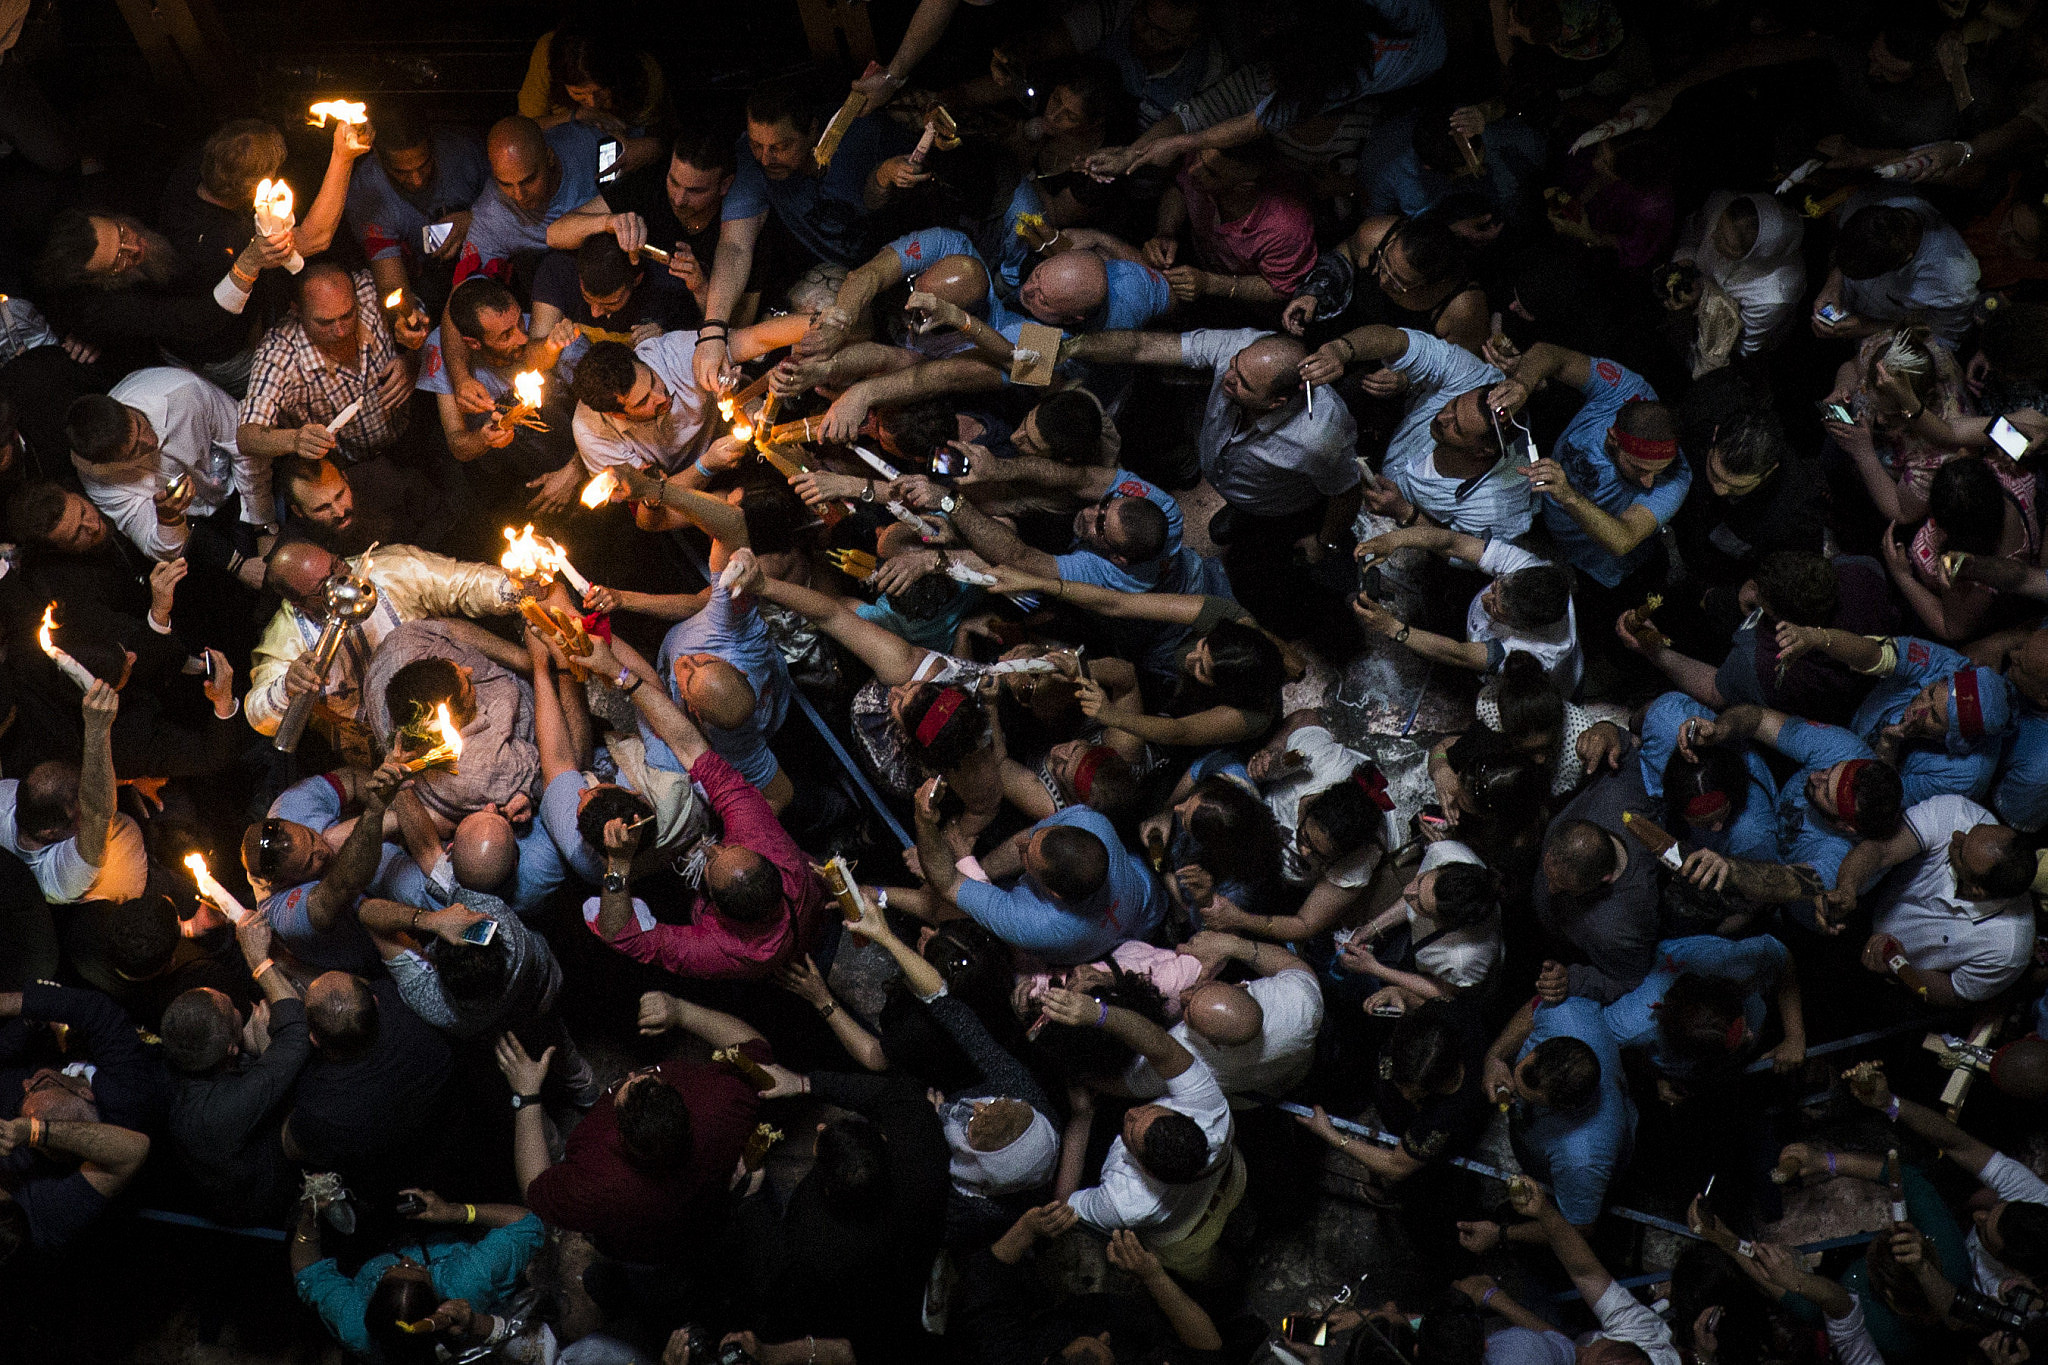 Orthodox Christian worshippers take part in the Holy Fire ceremony at the Church of the Holy Sepulchre in Jerusalem's Old City during the Easter holiday, April 30, 2016. (Hadas Parush/Flash90)